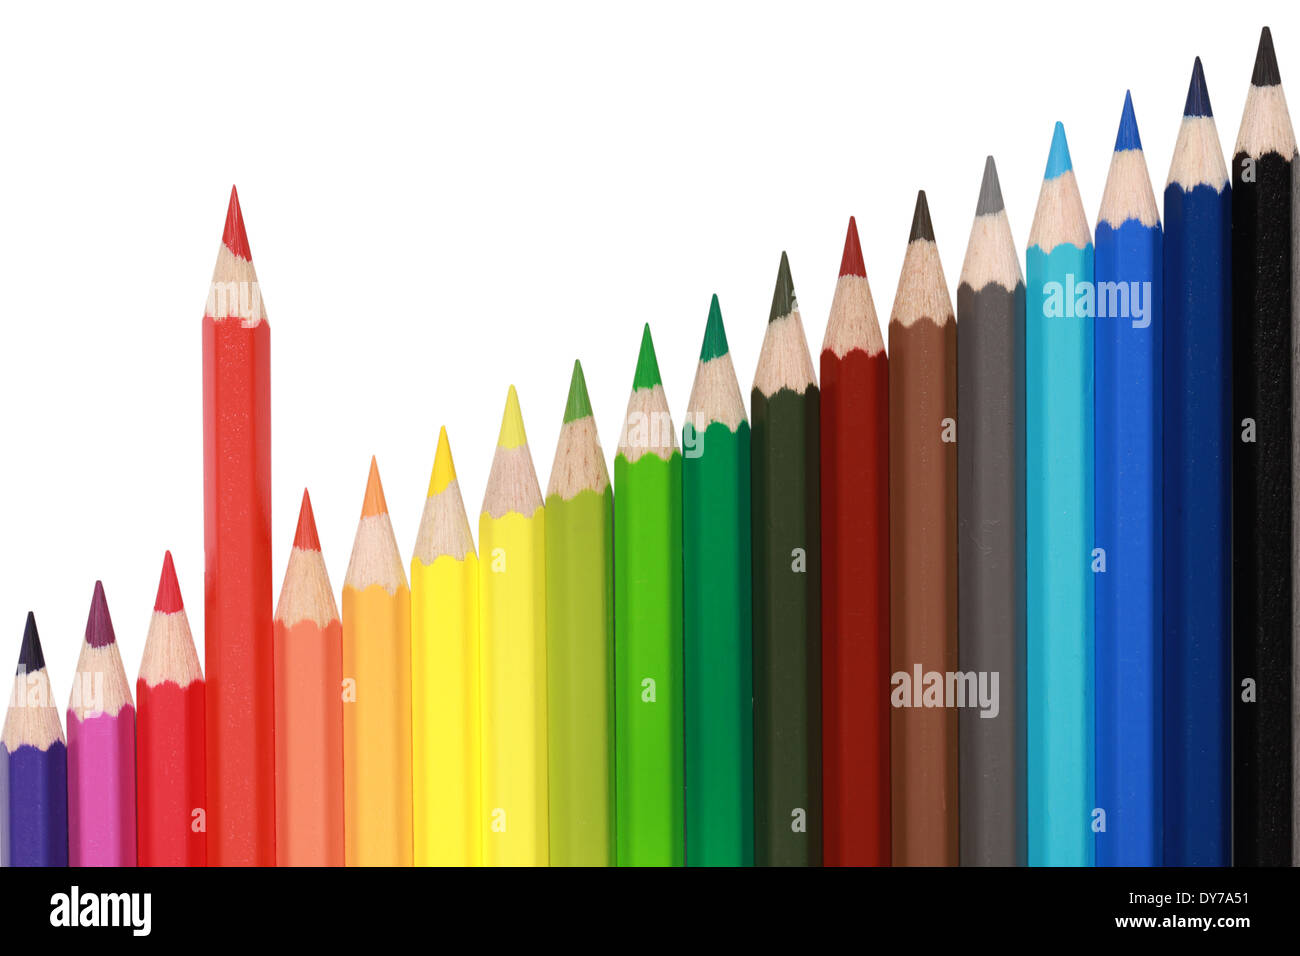 Pencils forming a chart with a red pencil standing out from the crowd - Stock Image